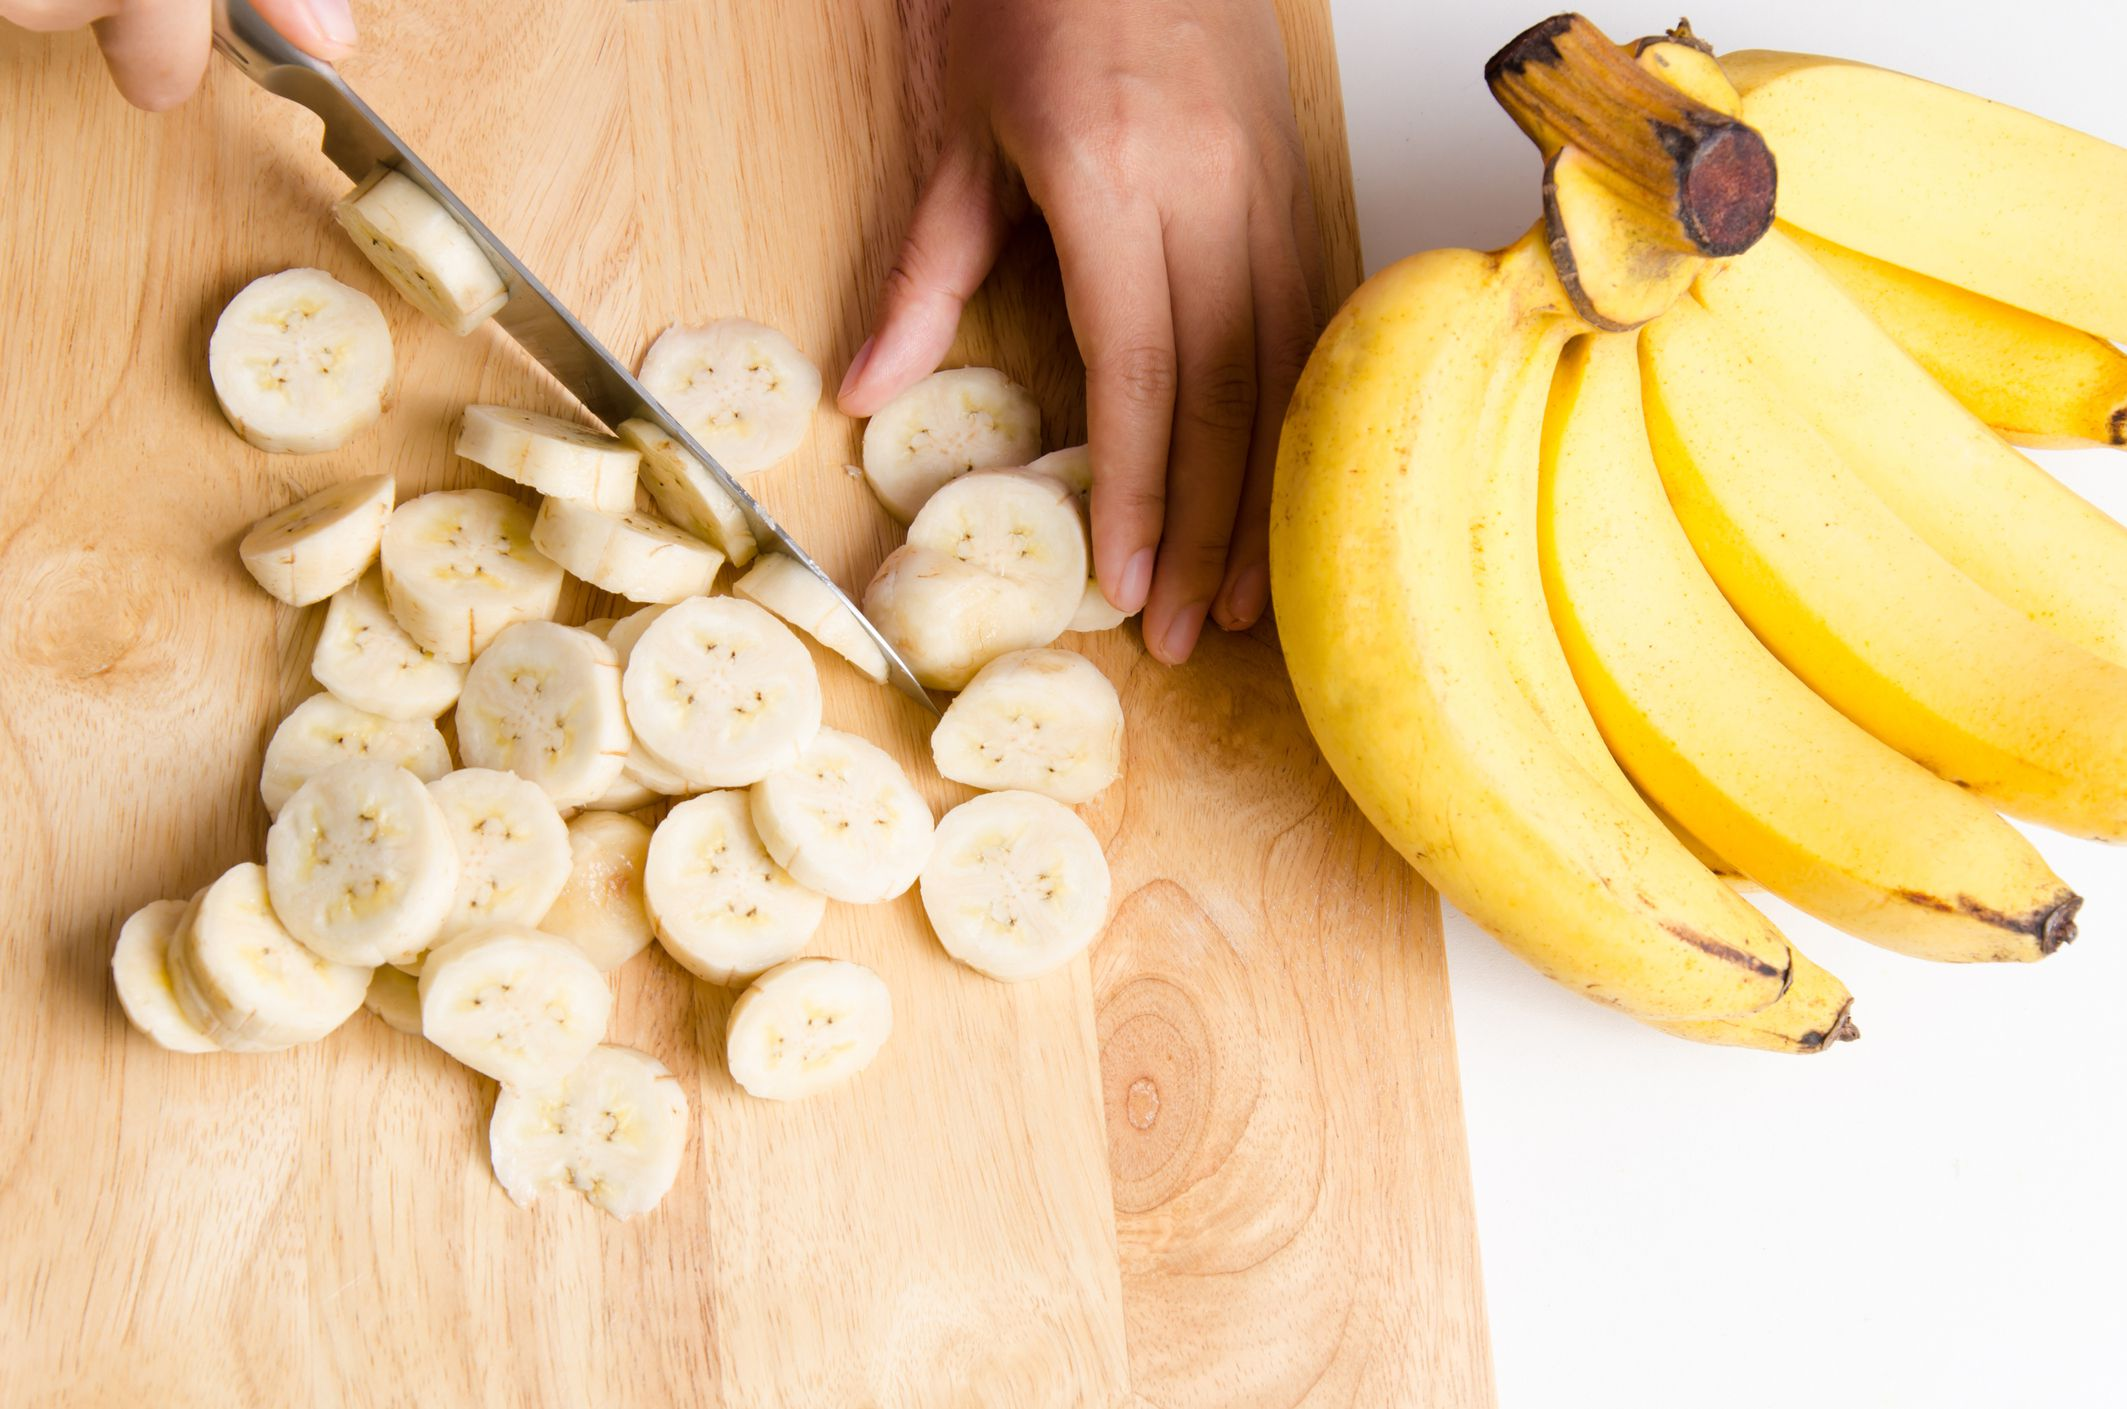 How To Cook With Bananas